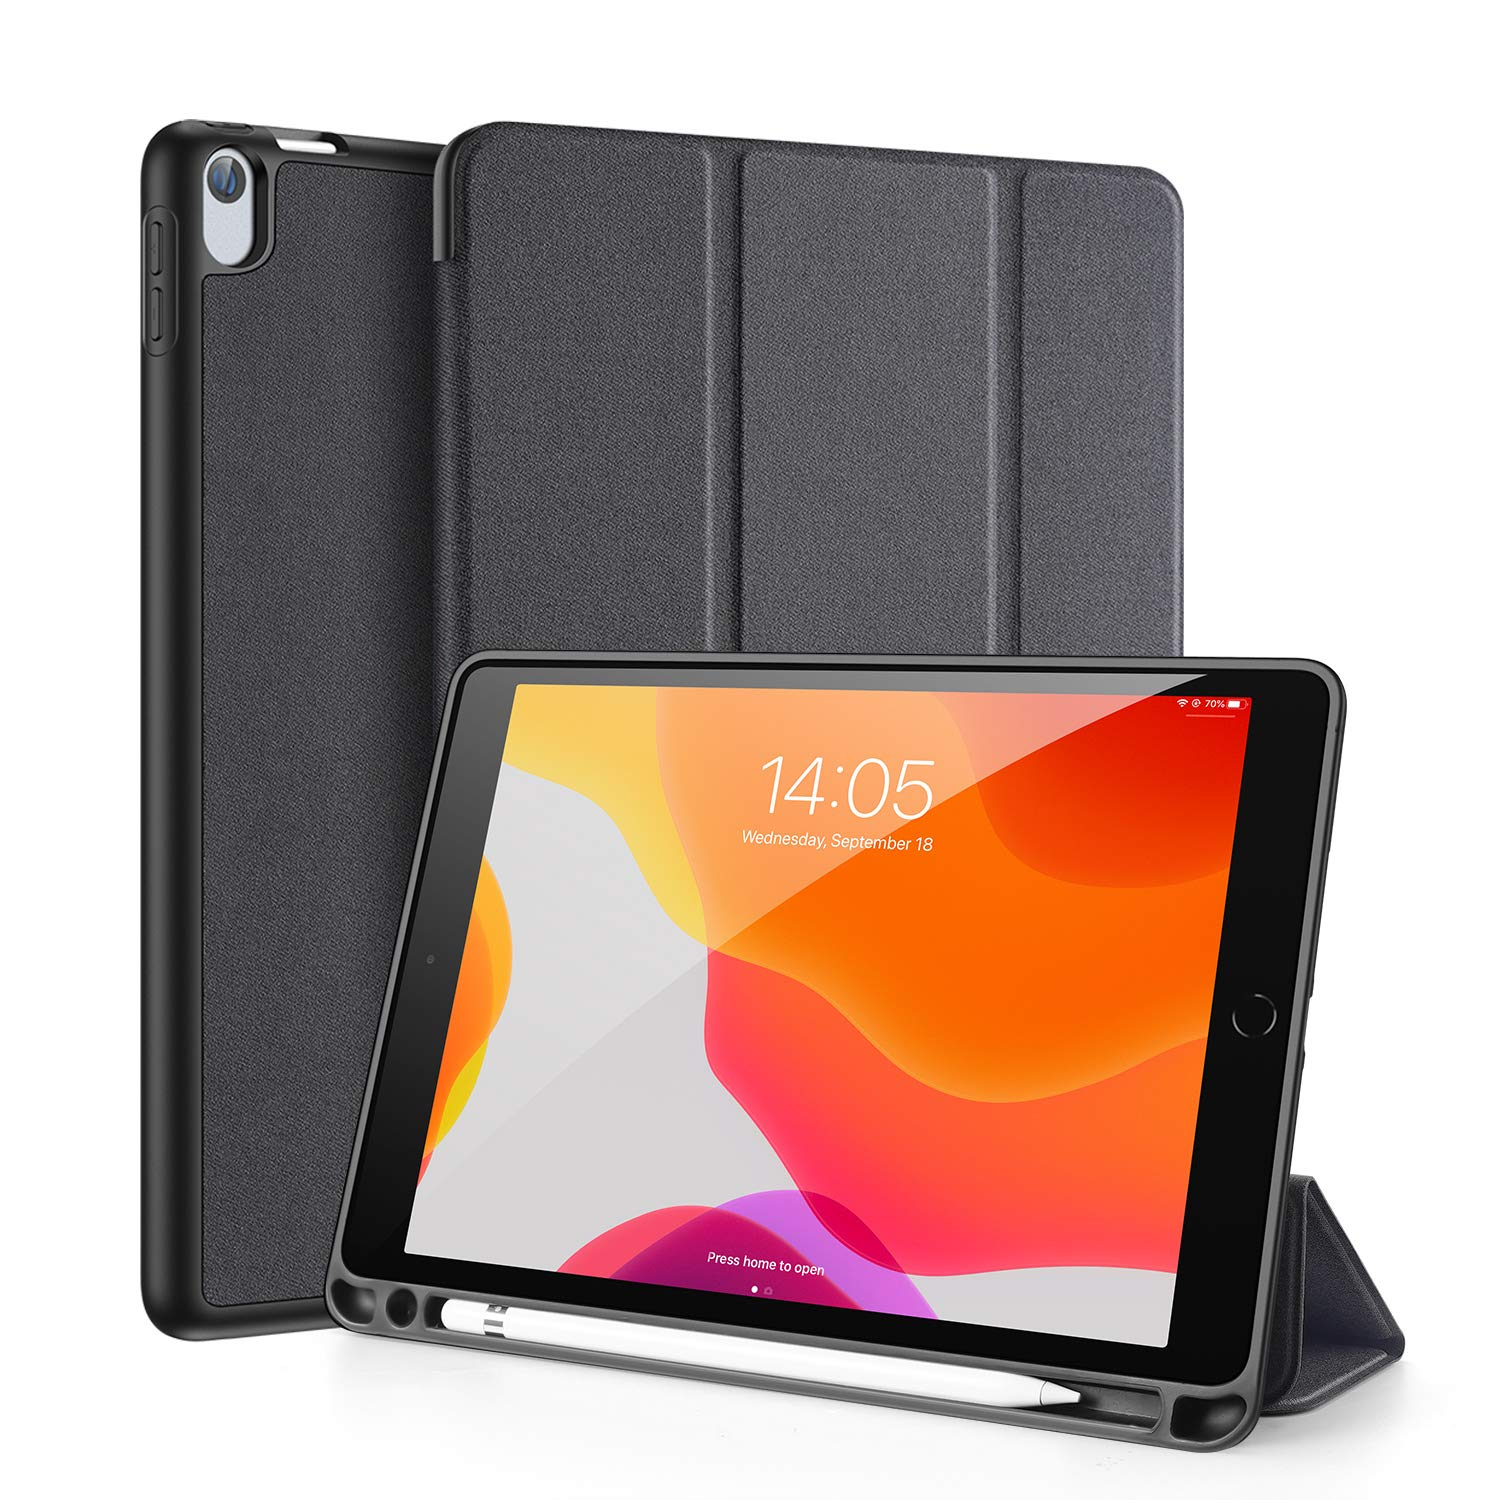 """iPad Air 3 10.5 2019 / iPad Pro 10.5 2017 Case with Pencil Holder, DUX DUCIS Soft TPU Back and Magnetic Trifold Stand Cover with Auto Sleep/Wake for iPad Air 3rd Gen 2019 / iPad Pro 10.5"""" 2017 (Black)"""